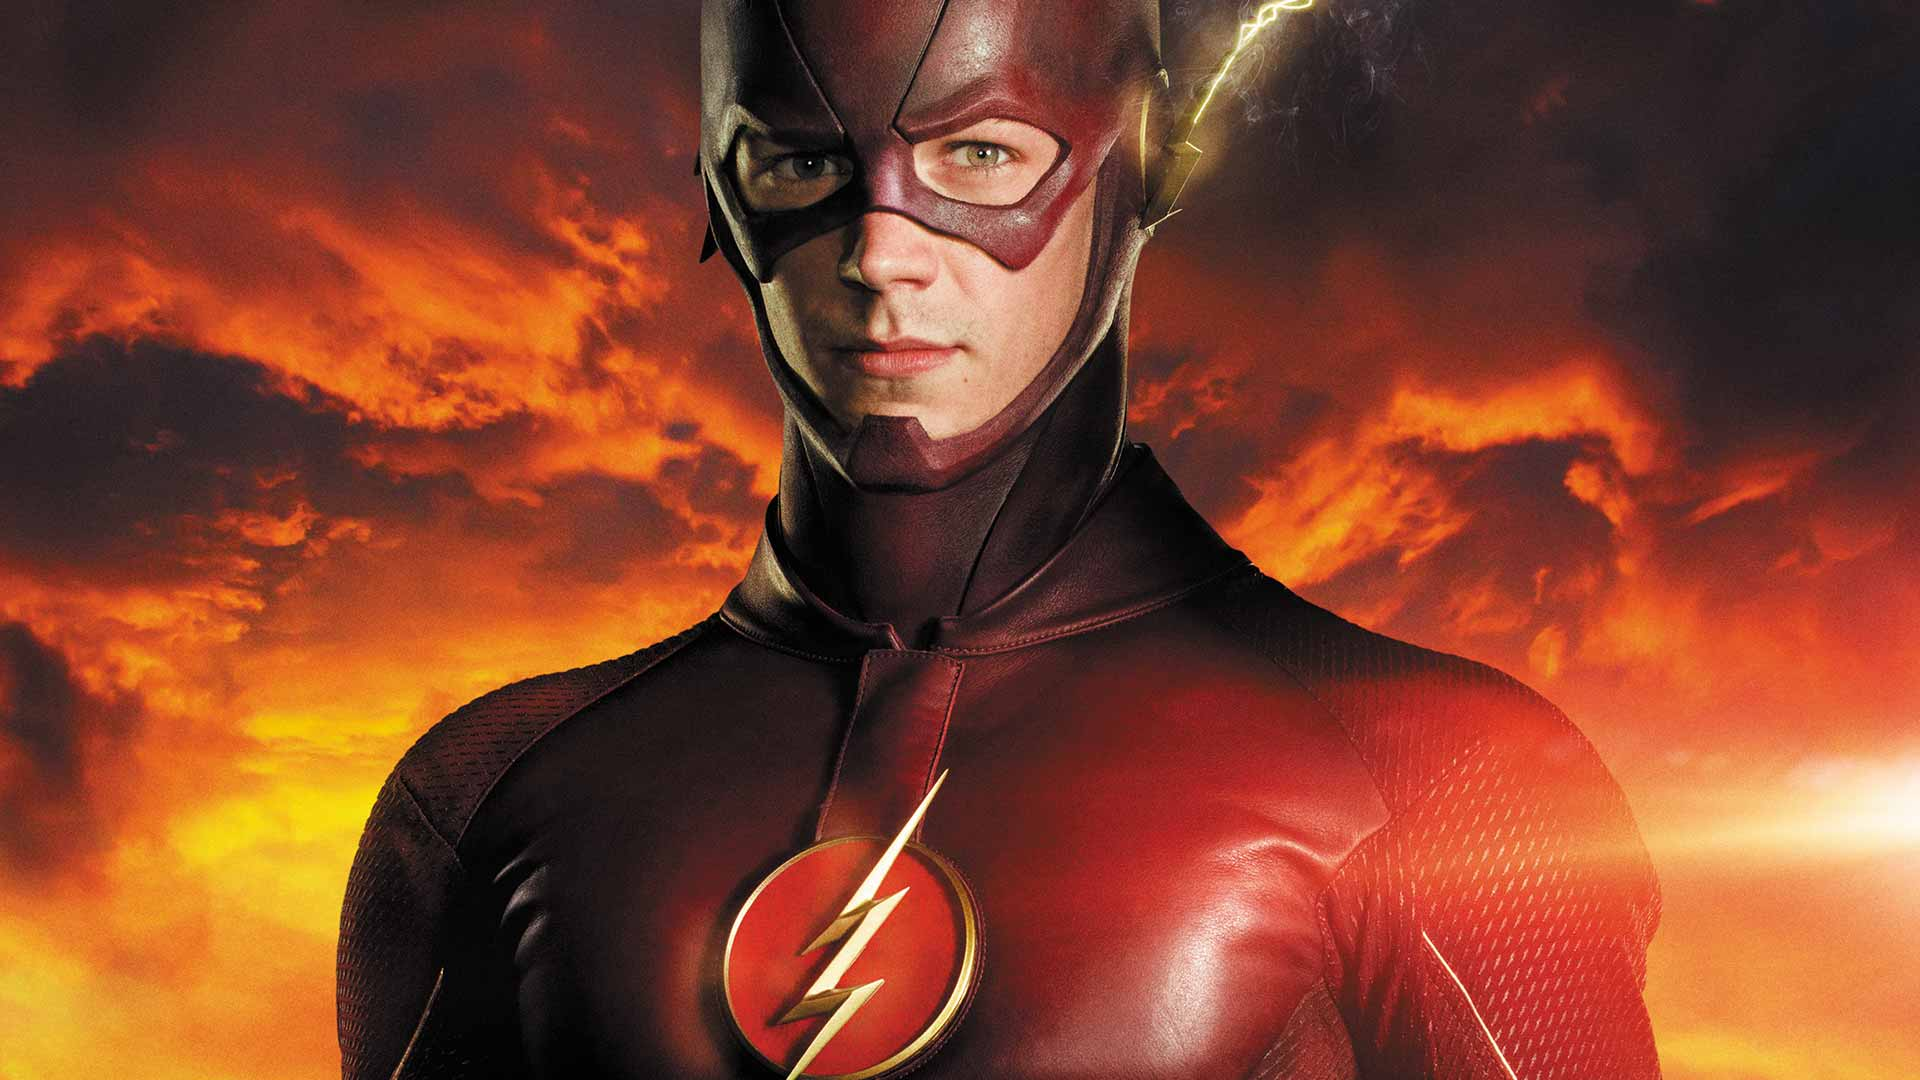 Will A Flash in time really save Nine?